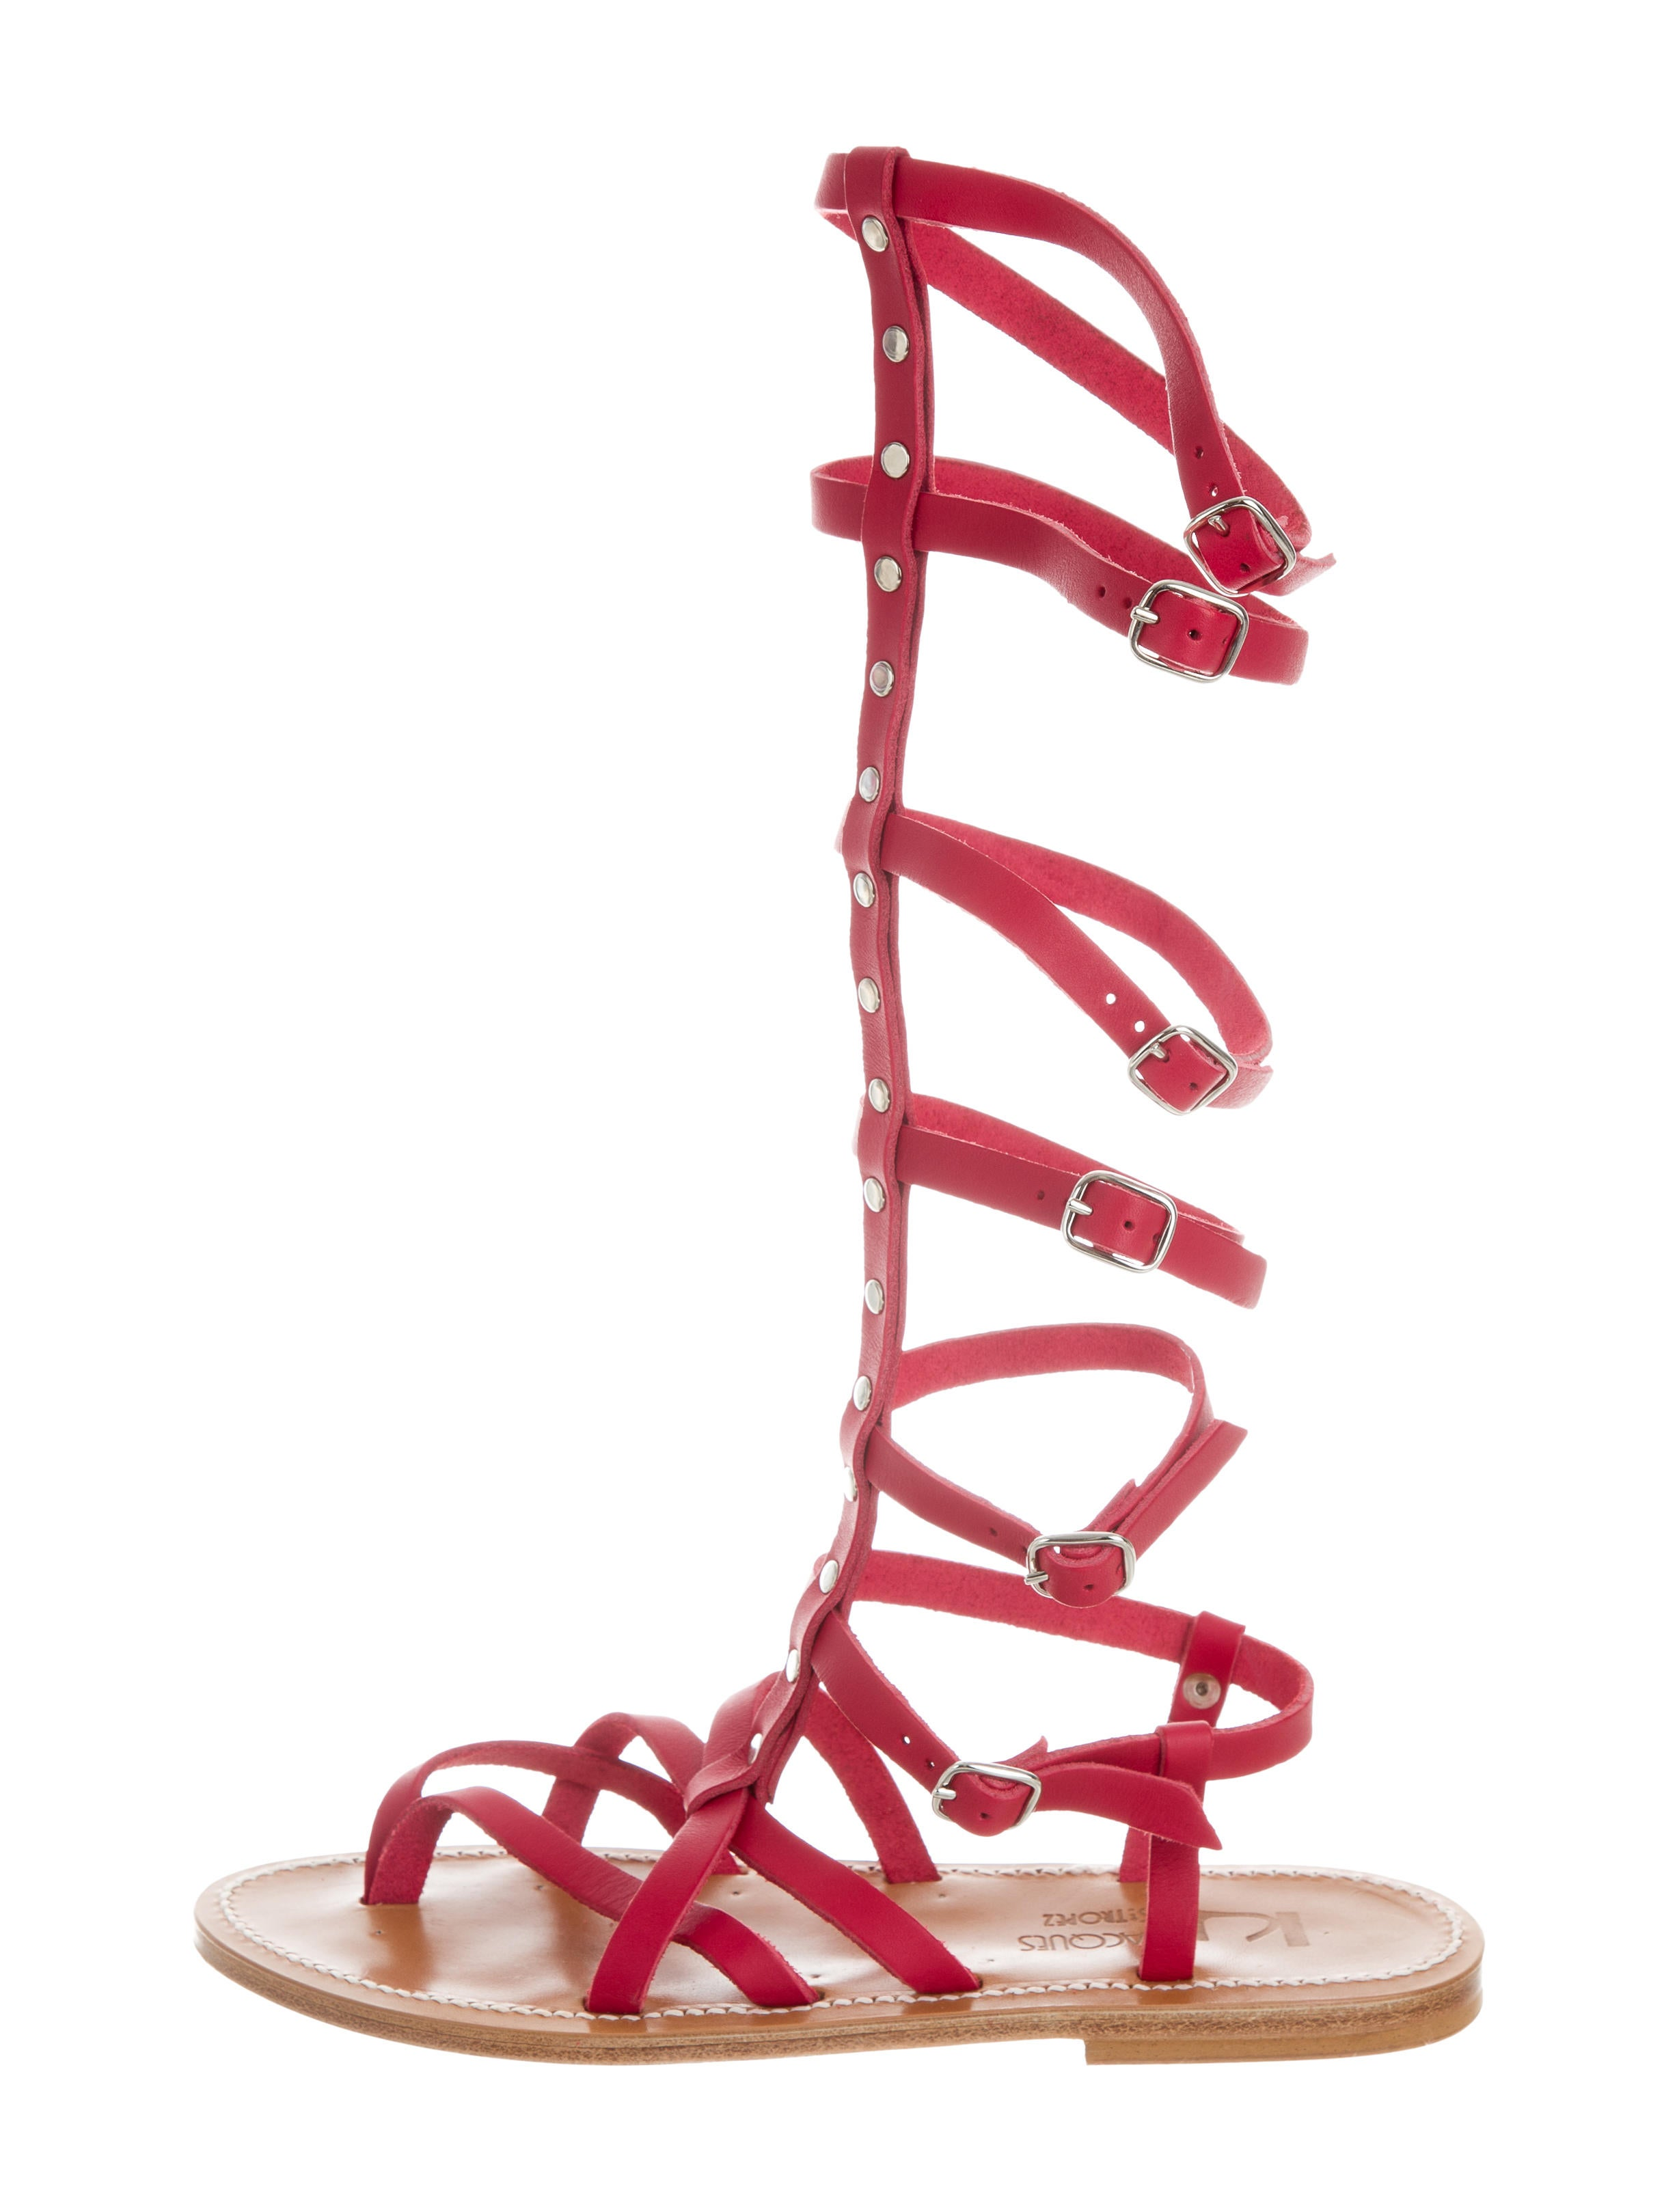 K Jacques St. Tropez Leather Gladiator Sandals w/ Tags cheap sale affordable clearance fast delivery footlocker pictures online sneakernews cheap online brand new unisex for sale ZxxGDMBX